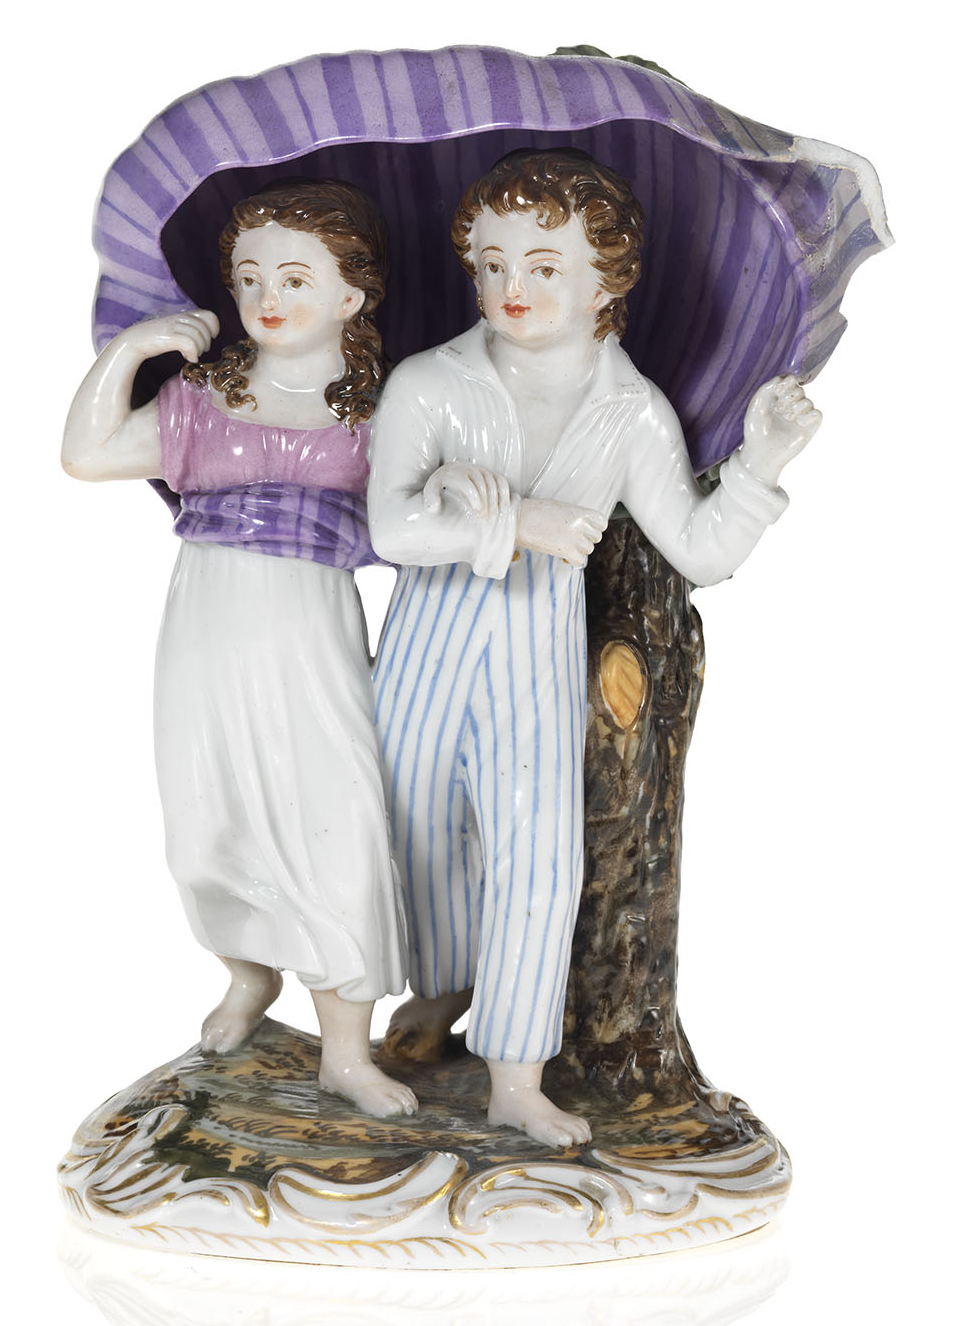 A Porcelain Composition of a Young Couple Running from the Storm